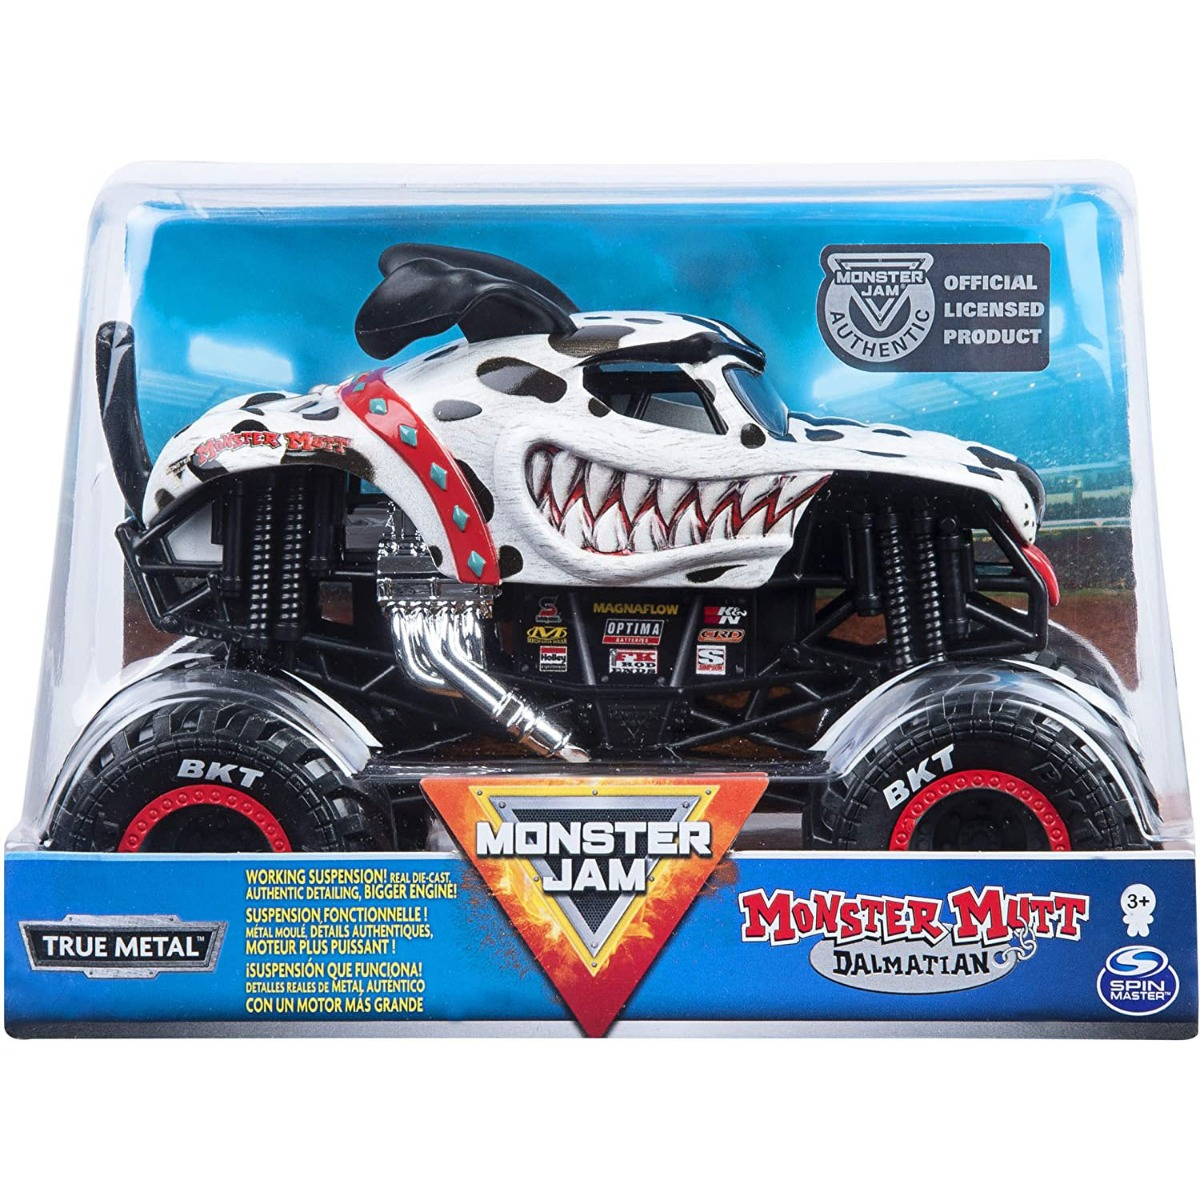 Masinuta Monster Jam, Monster Mutt Dalmatian, Scara 1:24 imagine 2021